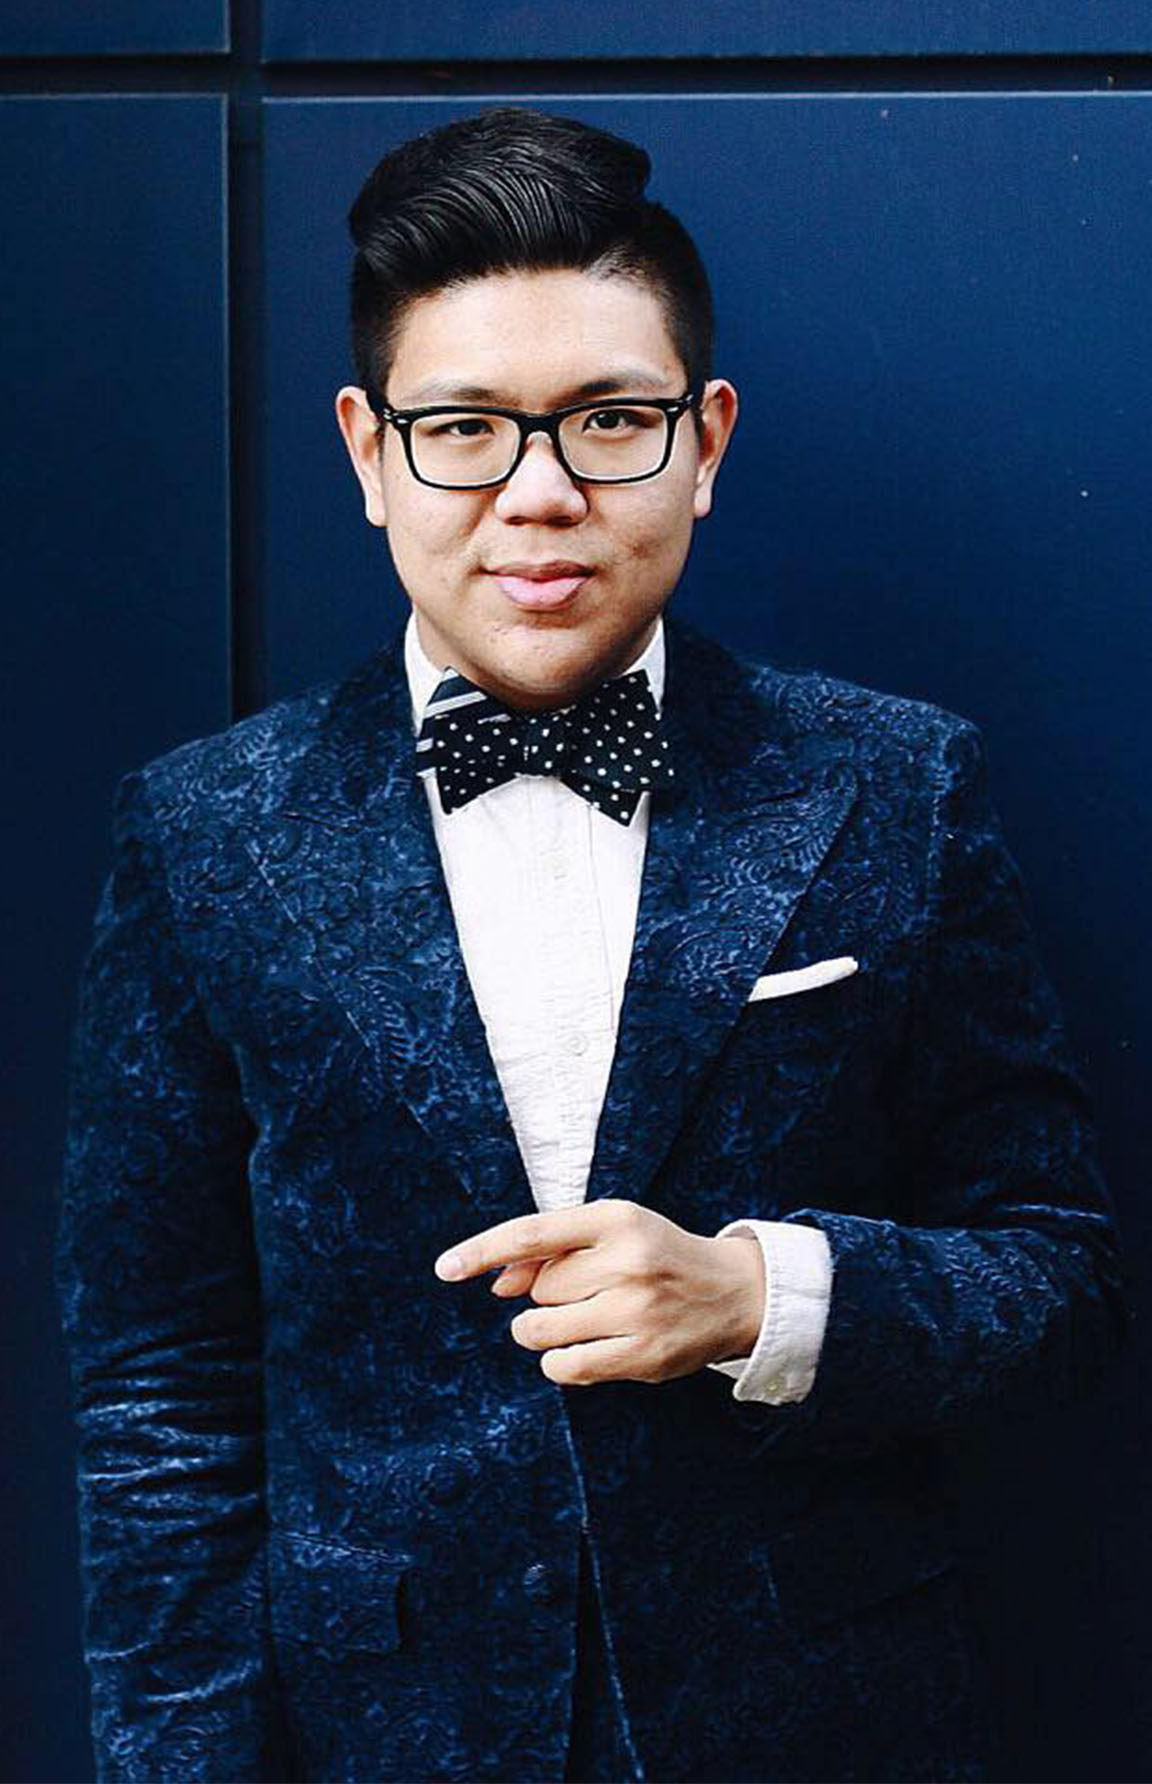 Our own Viranlly mixes and matches patterns and textures for a more unique bow tie look